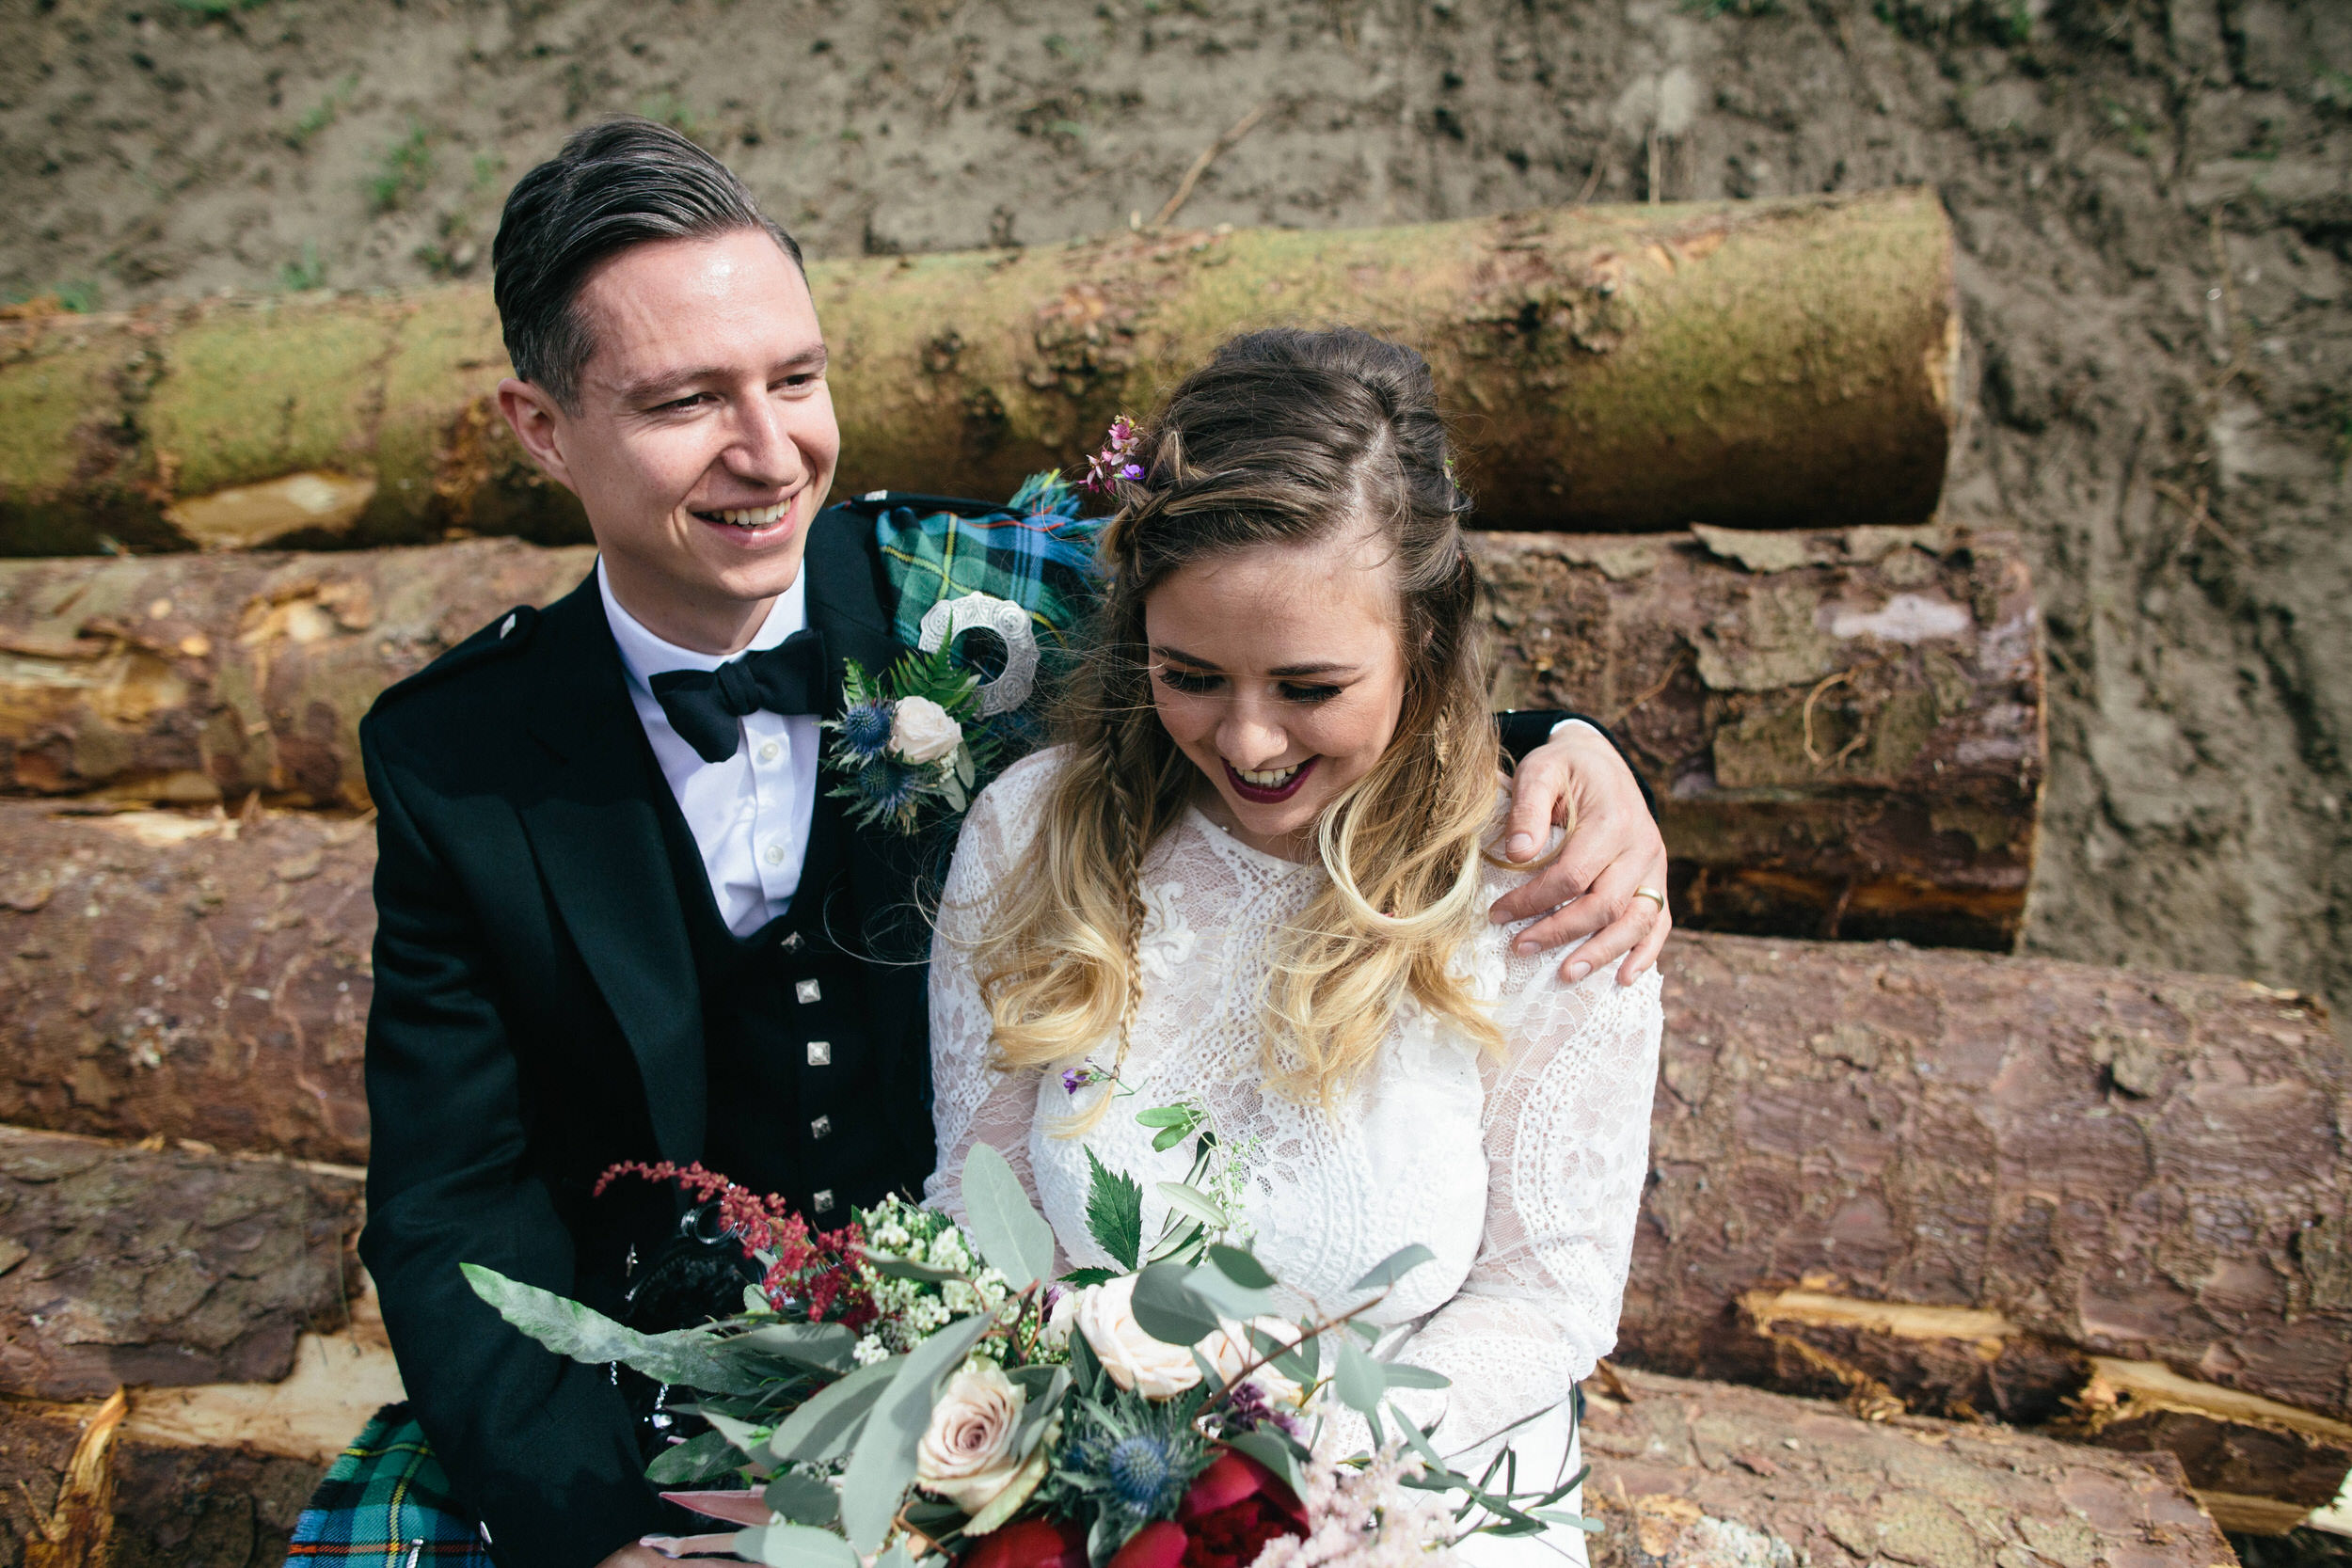 Quirky Wedding Photographer Scotland Glasgow Edinburgh Mirrorbox 100.jpg